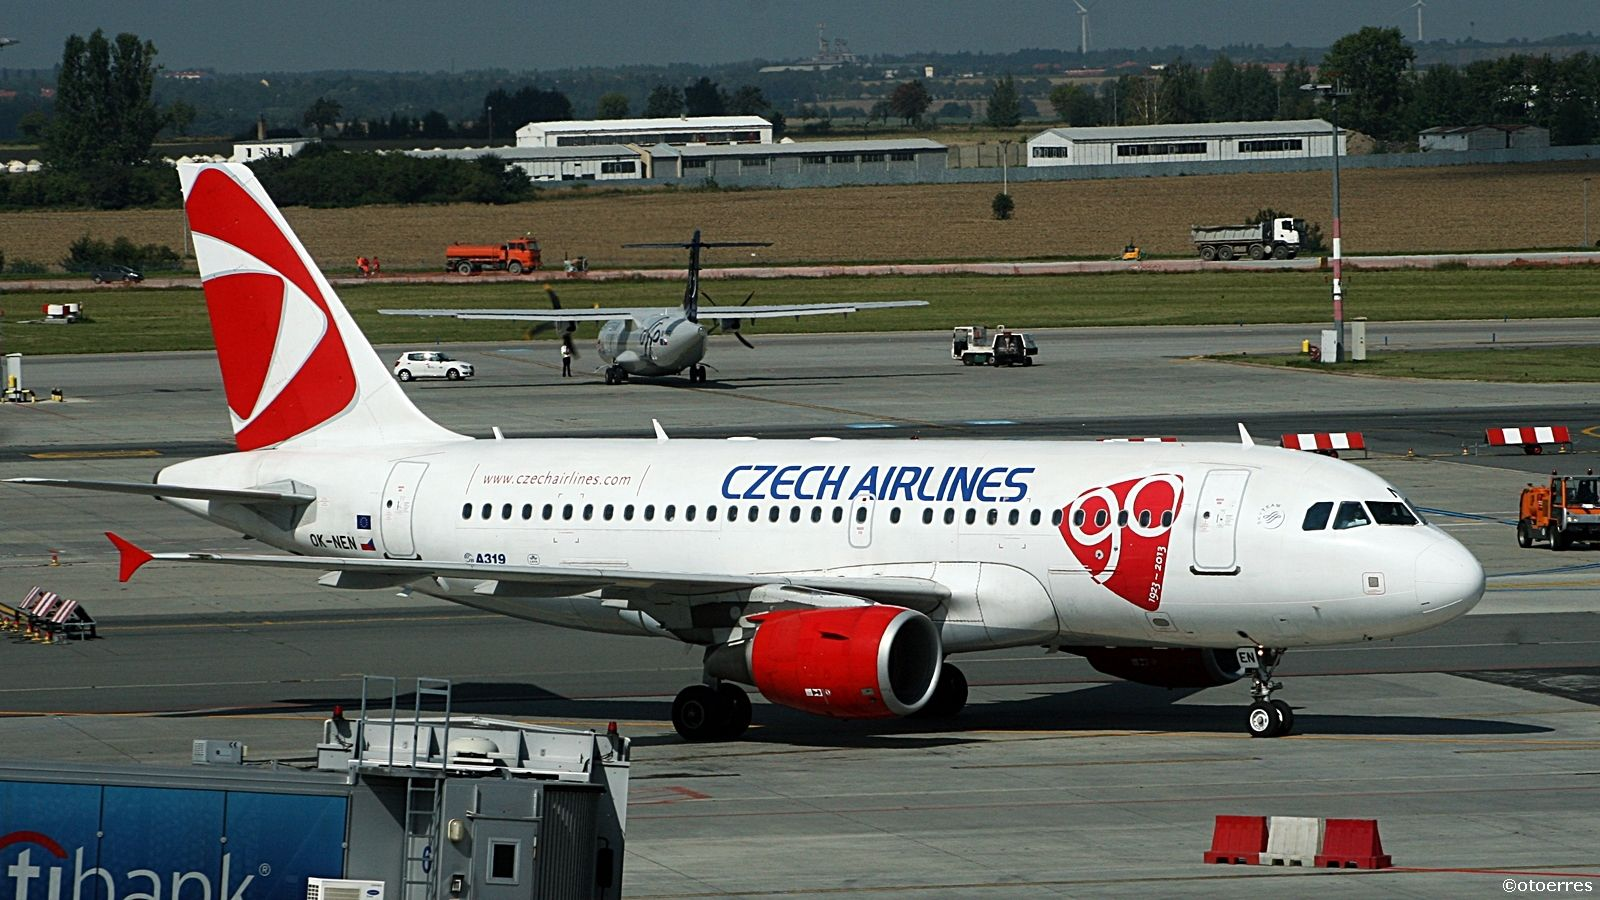 Czech Airlines - Airbus A 319 - Praha